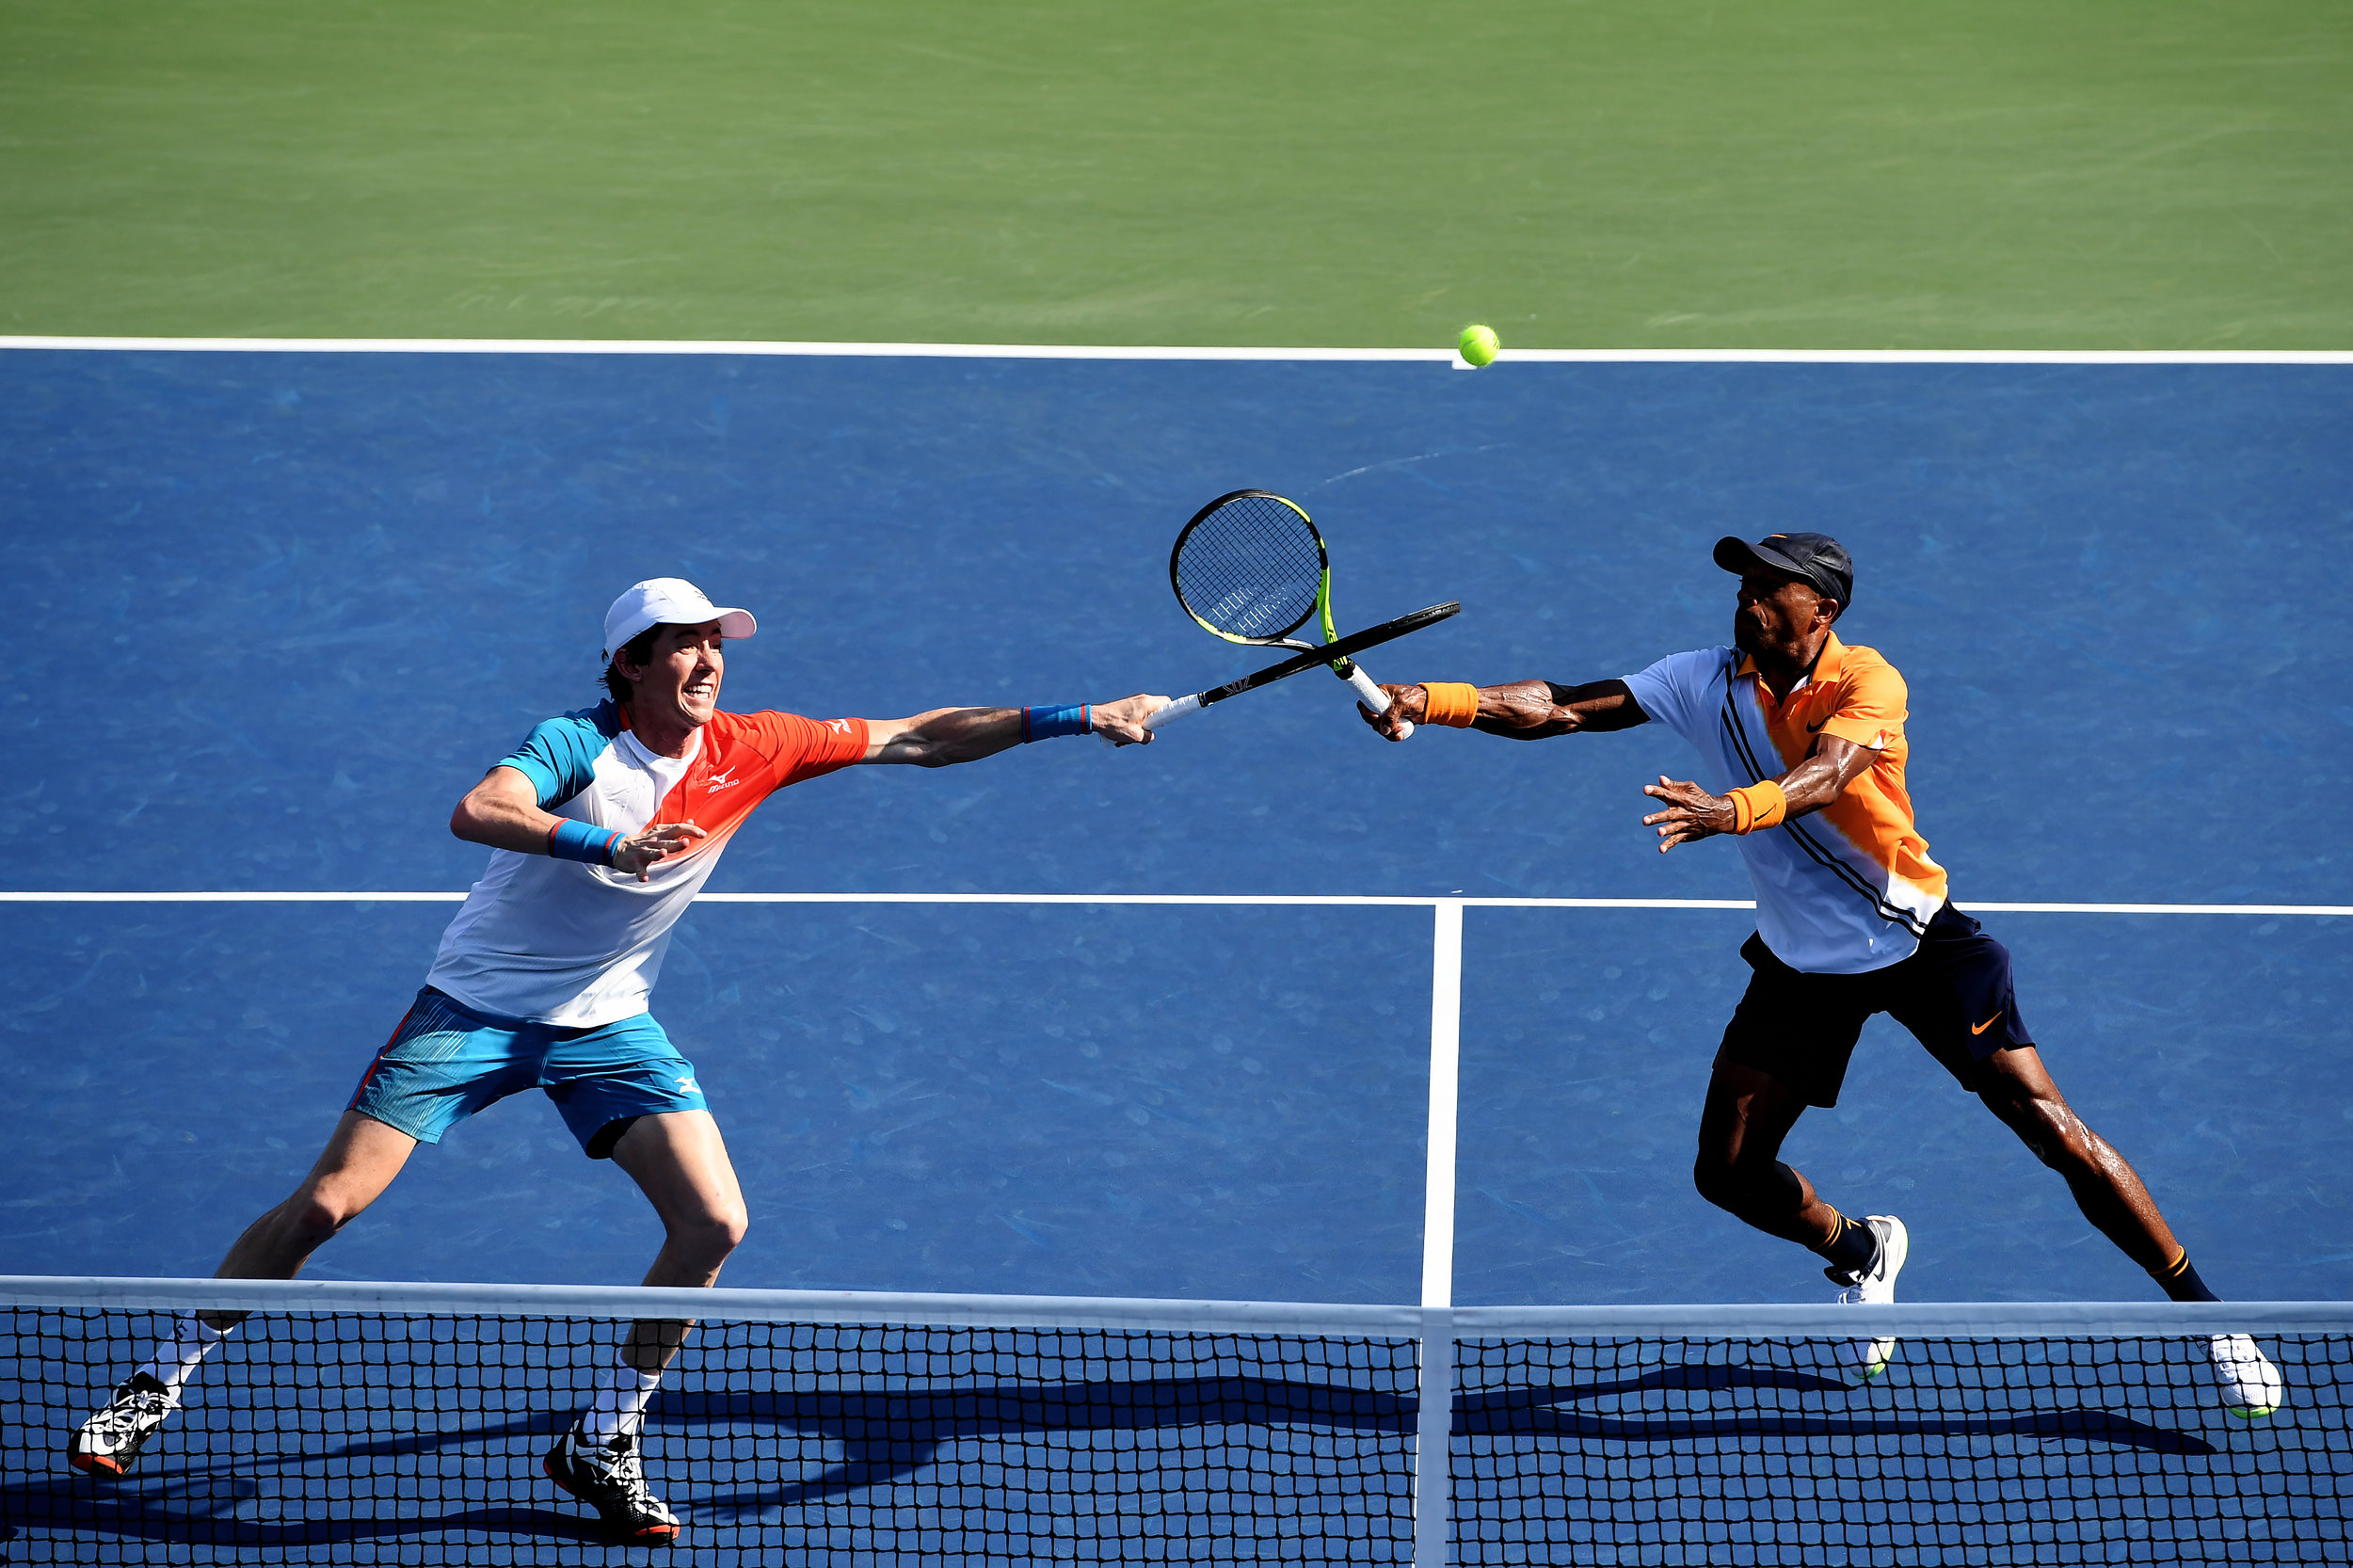 Nicholas Monro of the United States (R) and John-Patrick Smith of Australia in action during his men's doubles first round match against Nicolas Mahut and Pierre-Huhues Herbert of France on Day Three of the 2018 US Open at the USTA Billie Jean King National Tennis Center on August 29, 2018 in the Flushing neighborhood of the Queens borough of New York City.